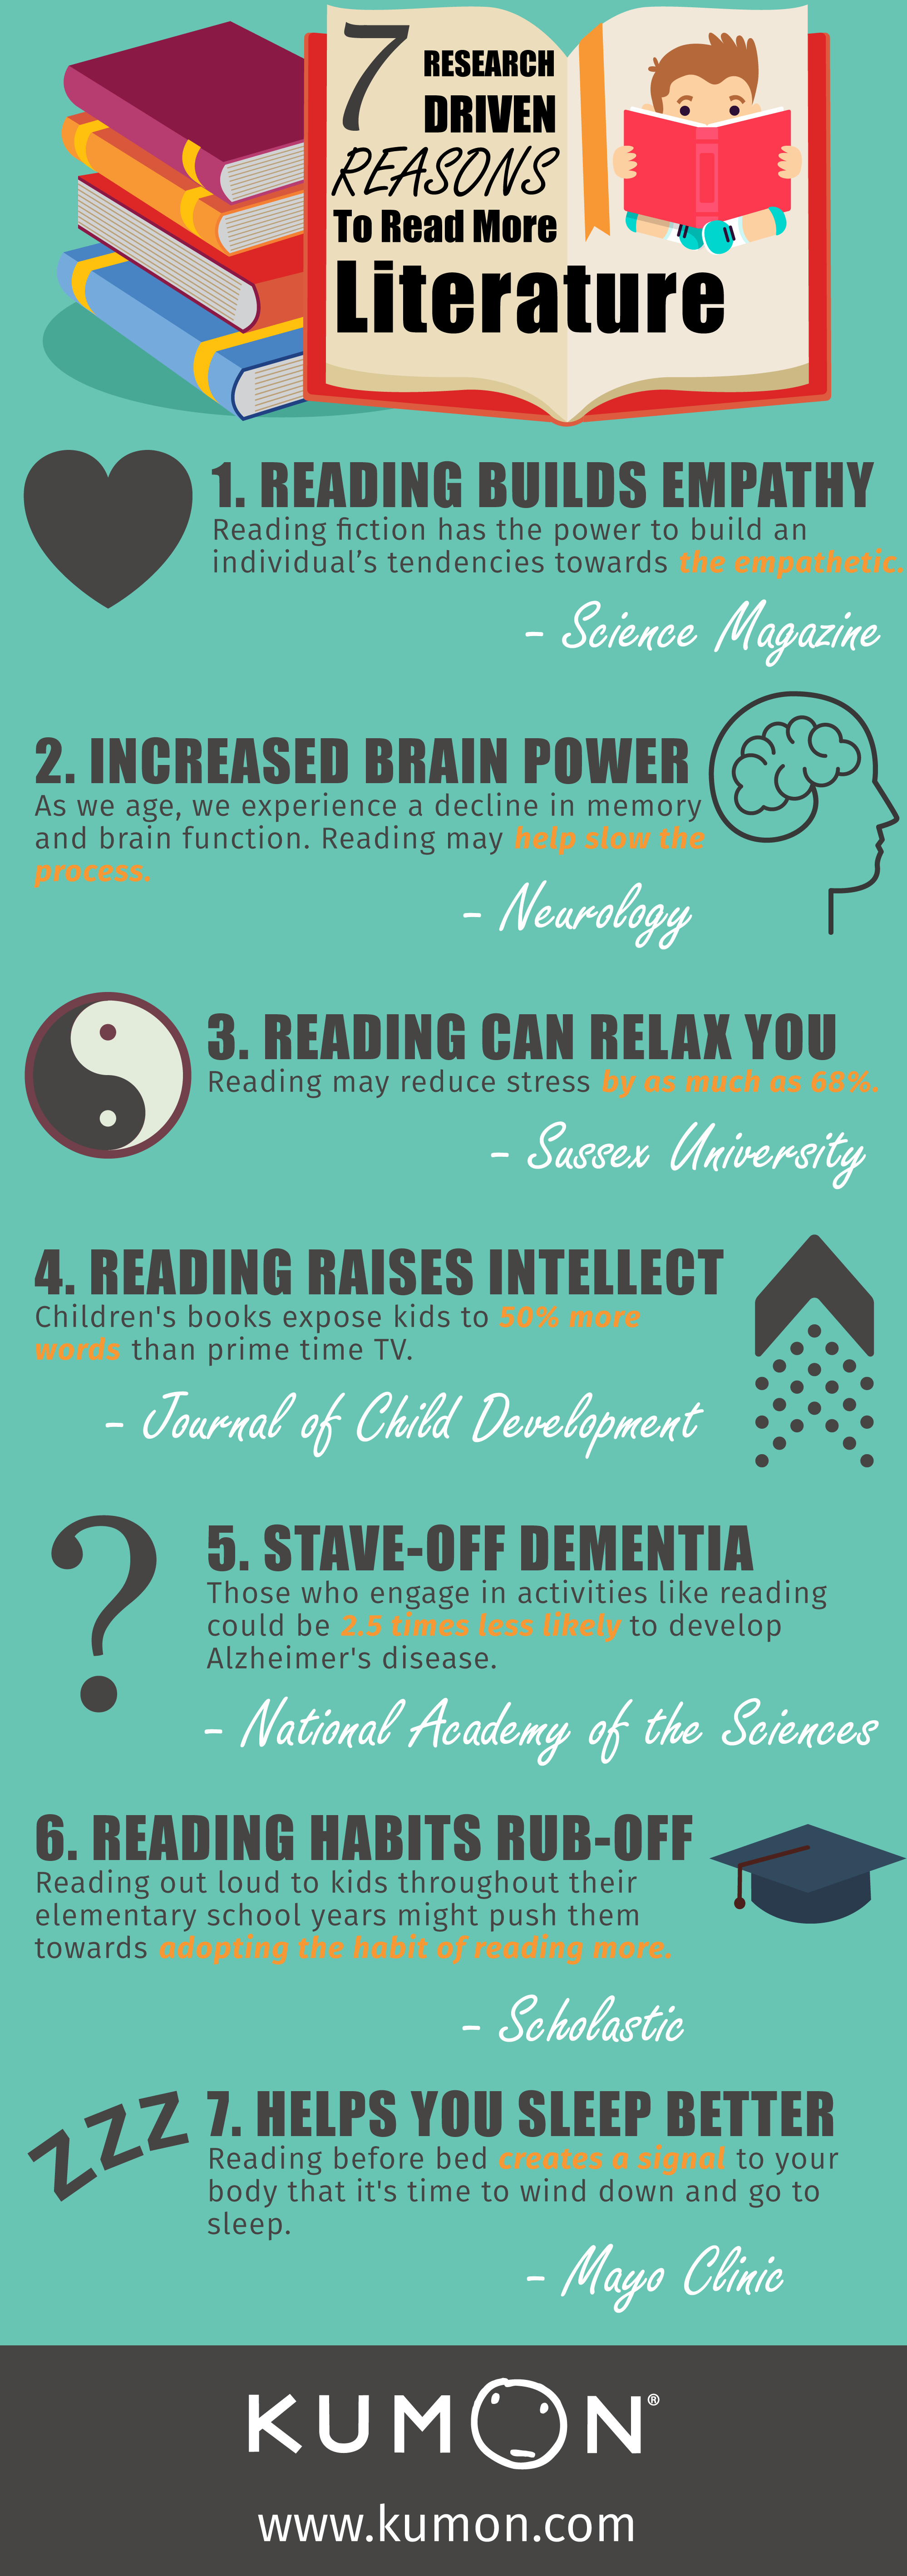 7 research-driven reasons to read more literature